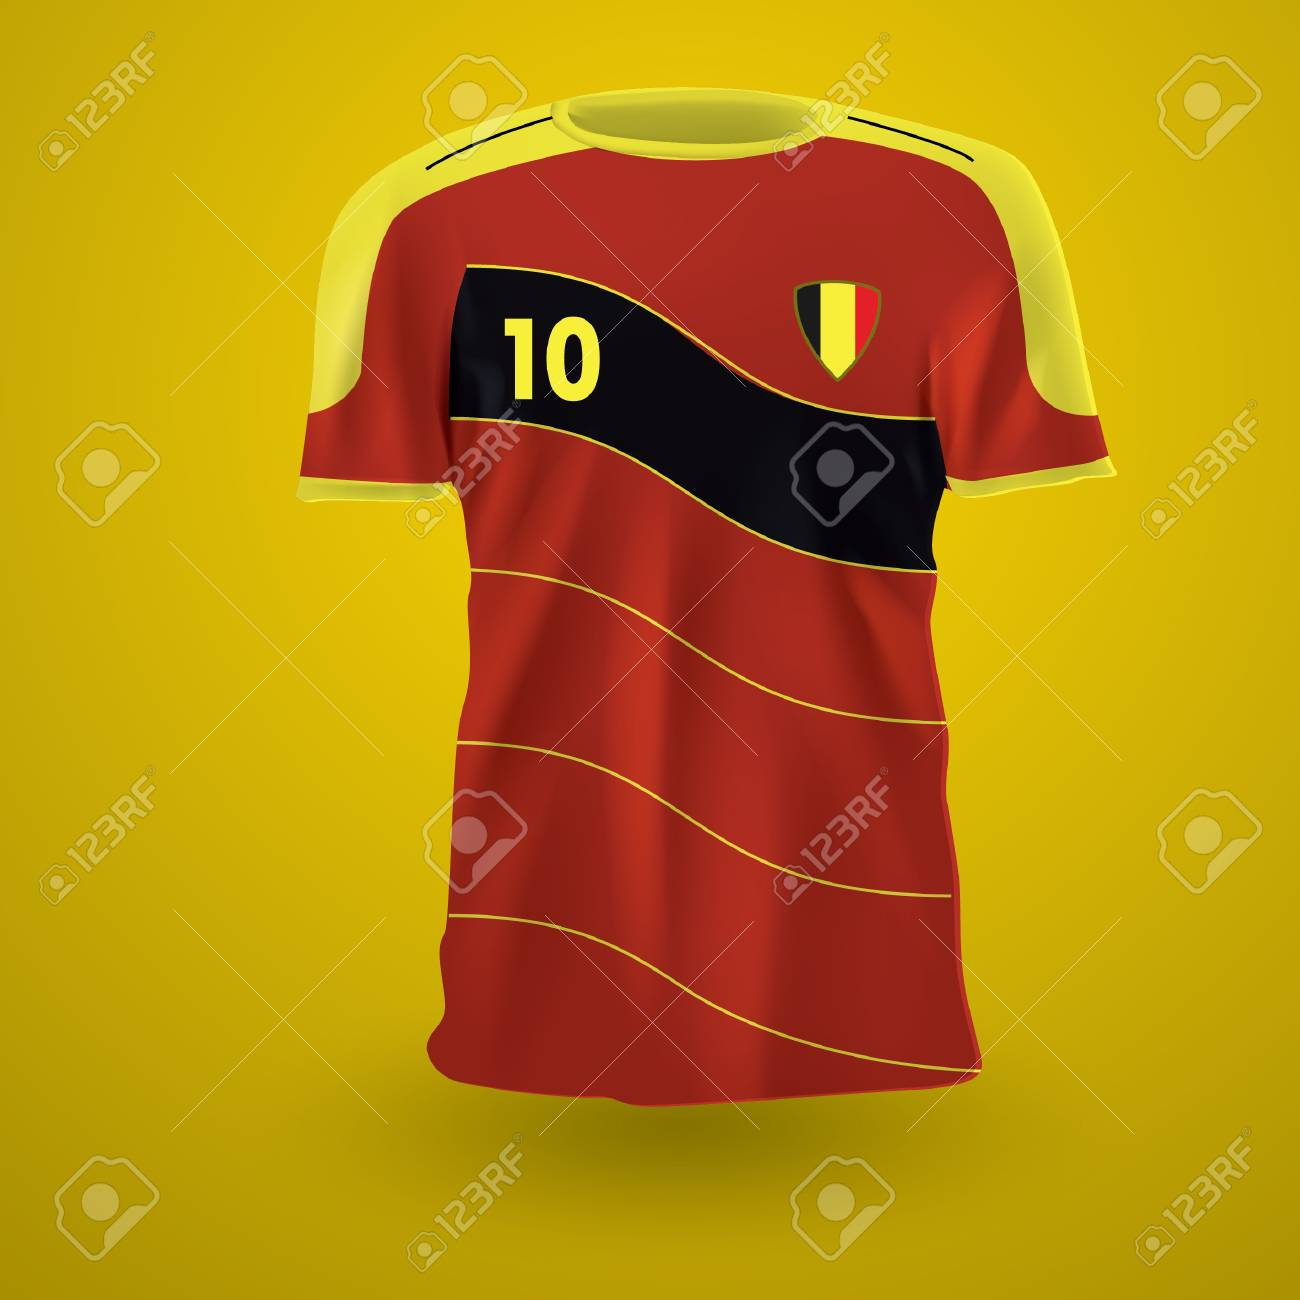 3a48af16954 Belgium Soccer Jersey Royalty Free Cliparts, Vectors, And Stock ...